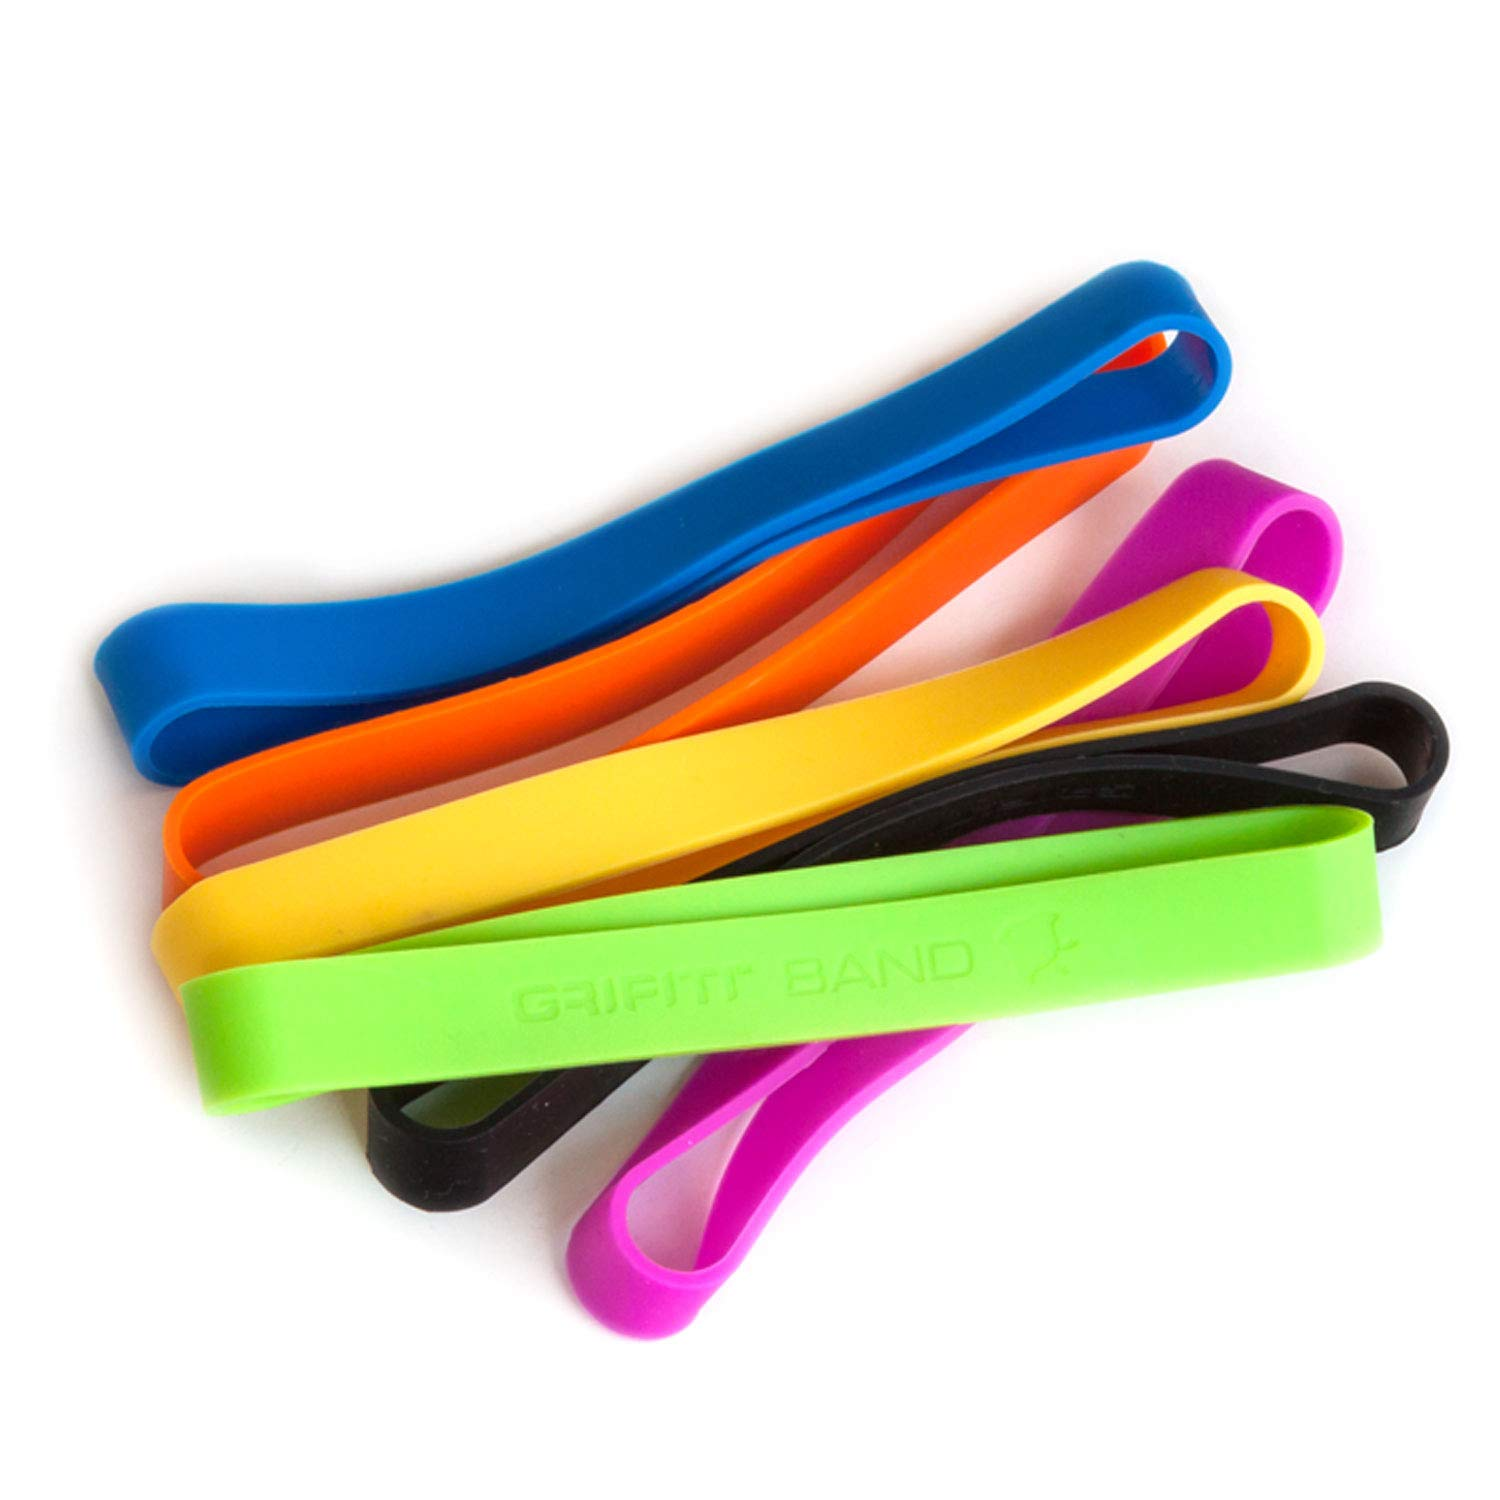 Grifiti Band Joes 6 5 Assorted Pack Heat Cold UV Chemical Resistant Bands Books, Camera Lens, Art, Cooking, Wrapping, Exercise, Bag Wraps, Dungies, Silicone Instead of Rubber or Elastic 41061